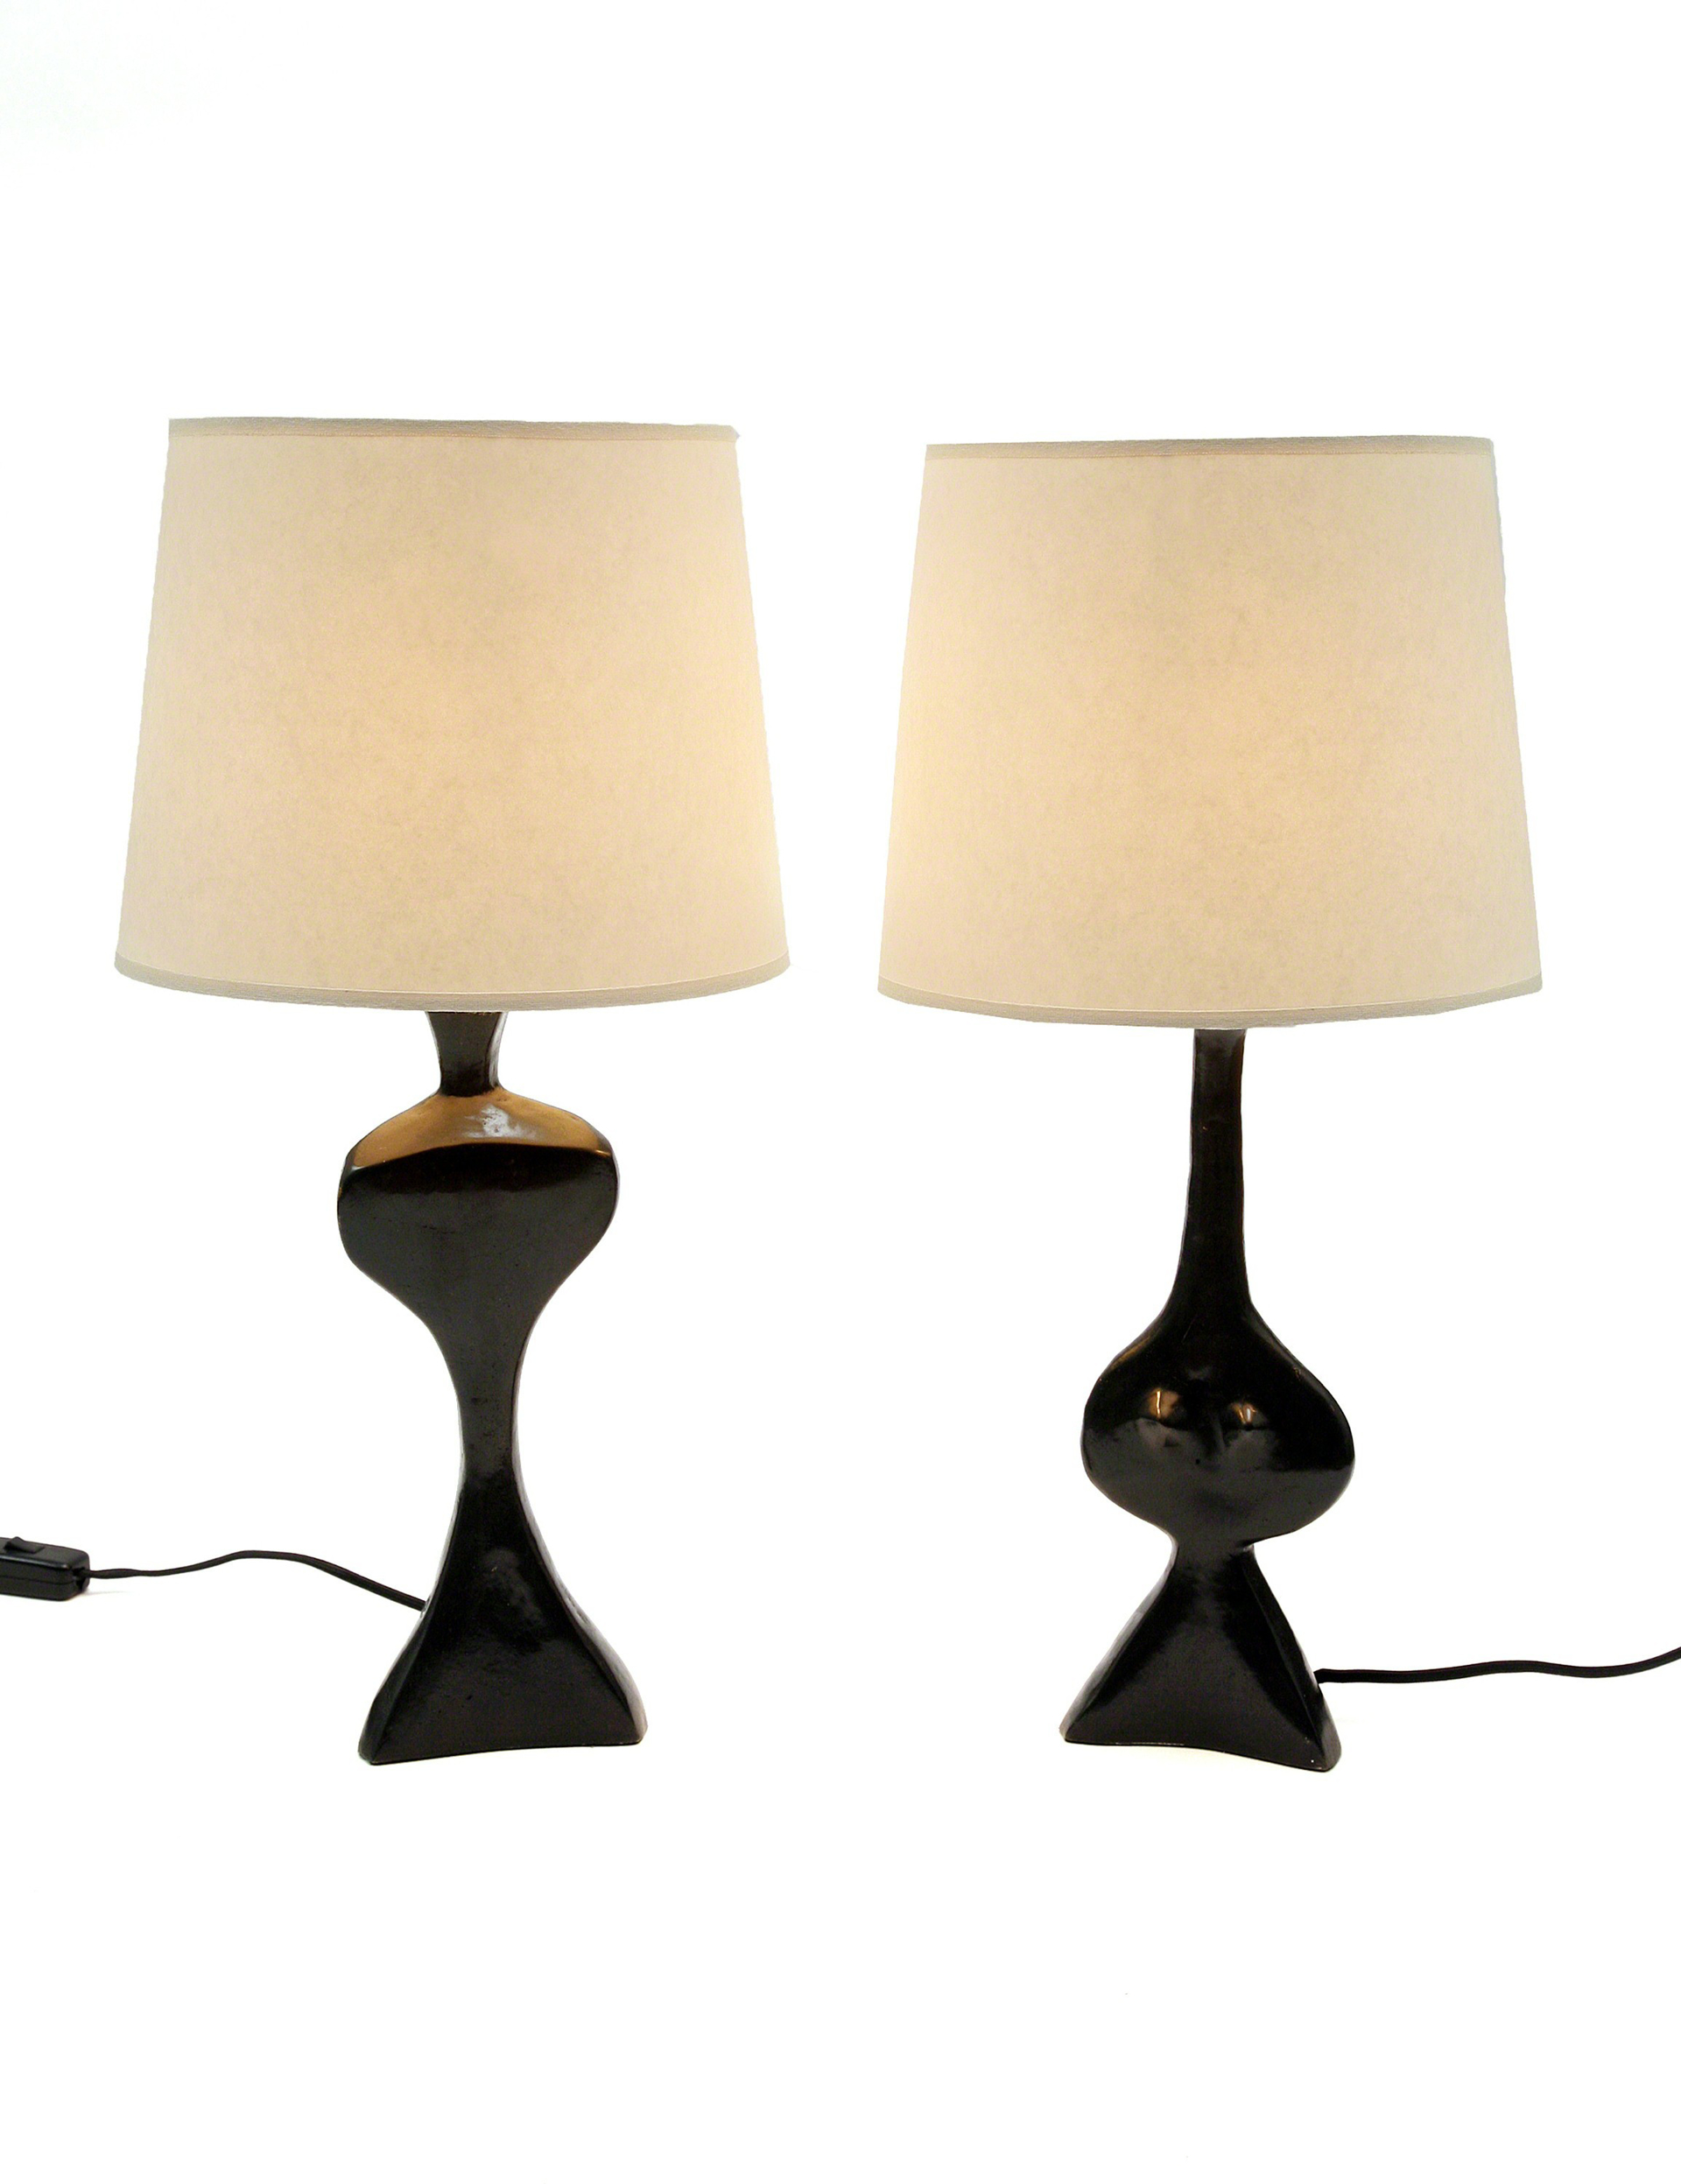 """Adam and Eve"" Lamps   by Jacques Jarrige"